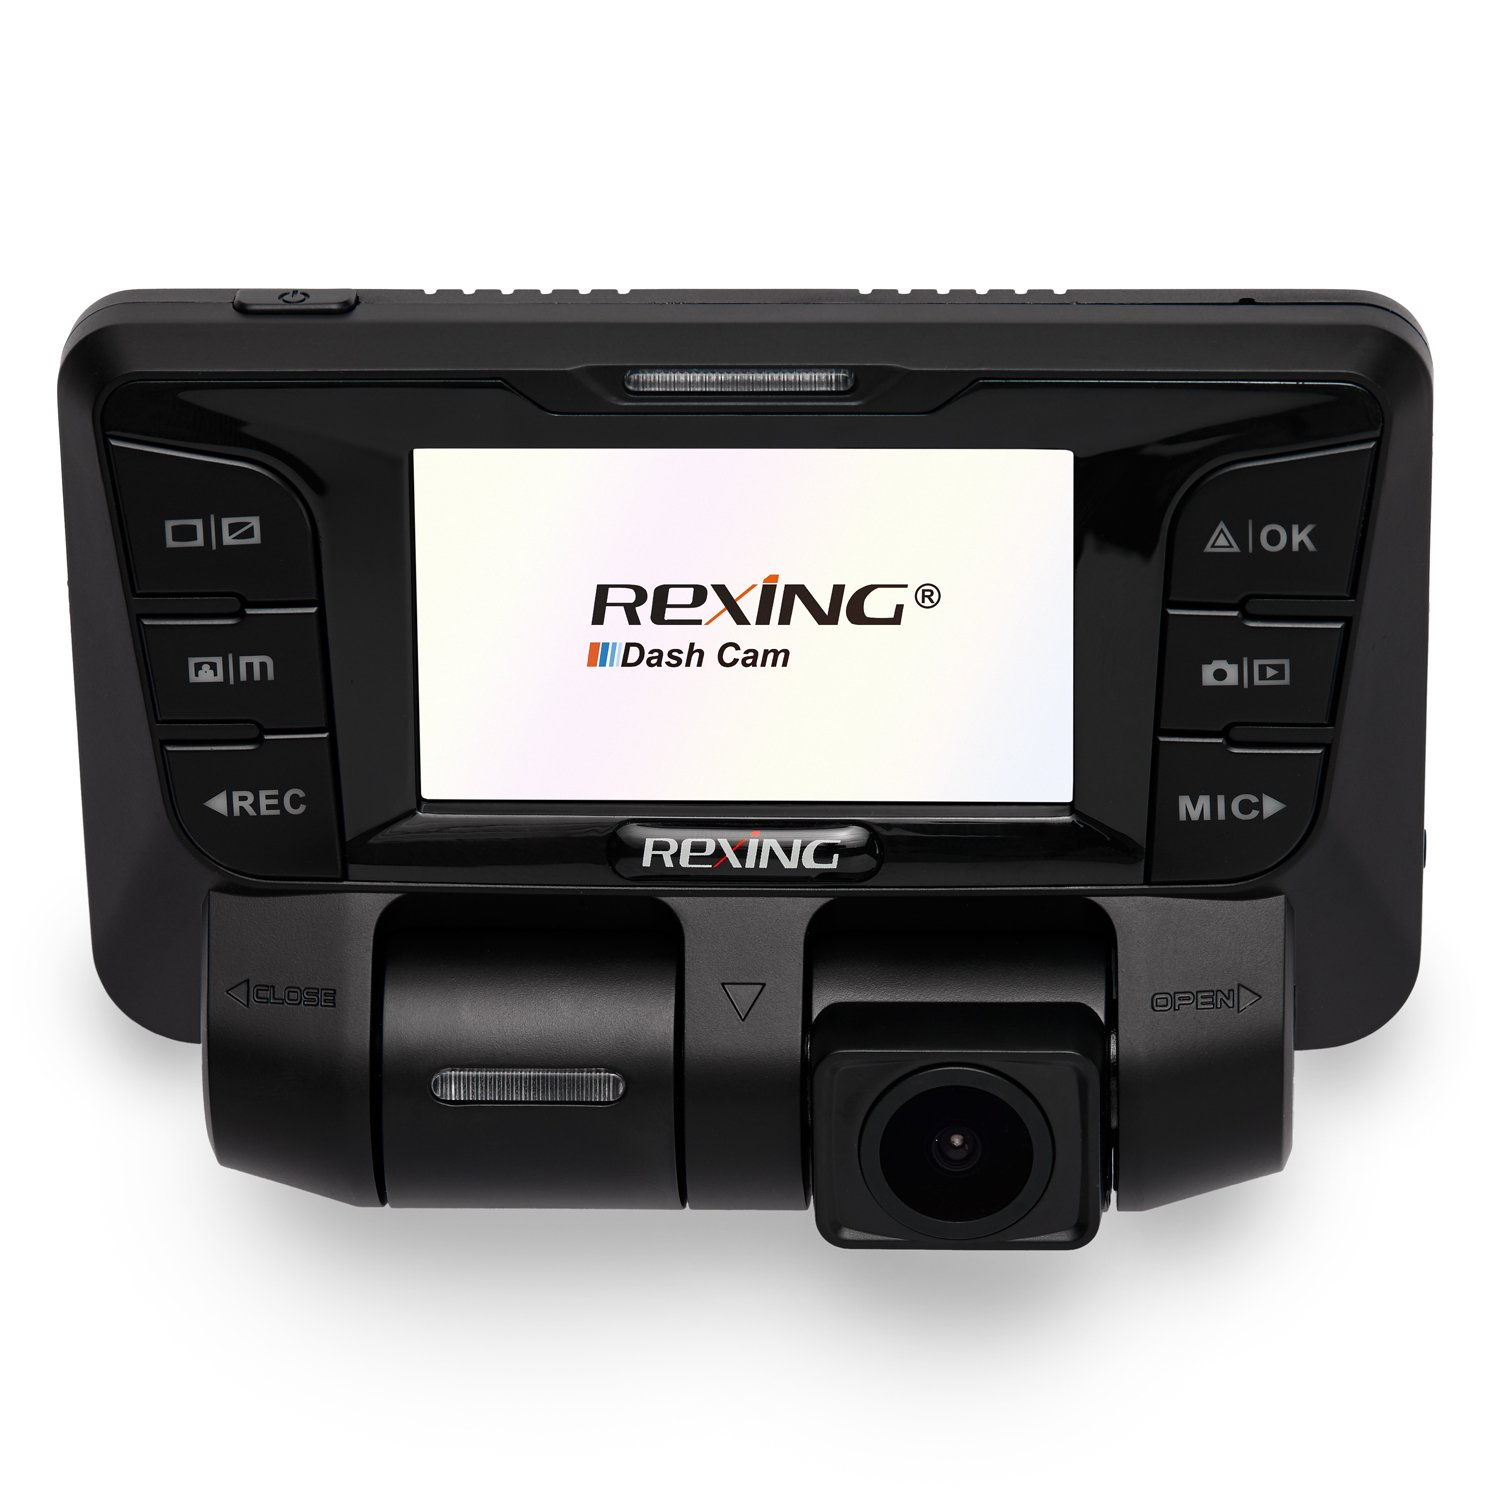 Rexing V2 Dash Cam Dual Channel 1080p+1080p Full HD 170+170 Degrees Wide Angle, WDR WiFi 2160p Dashboard Camera